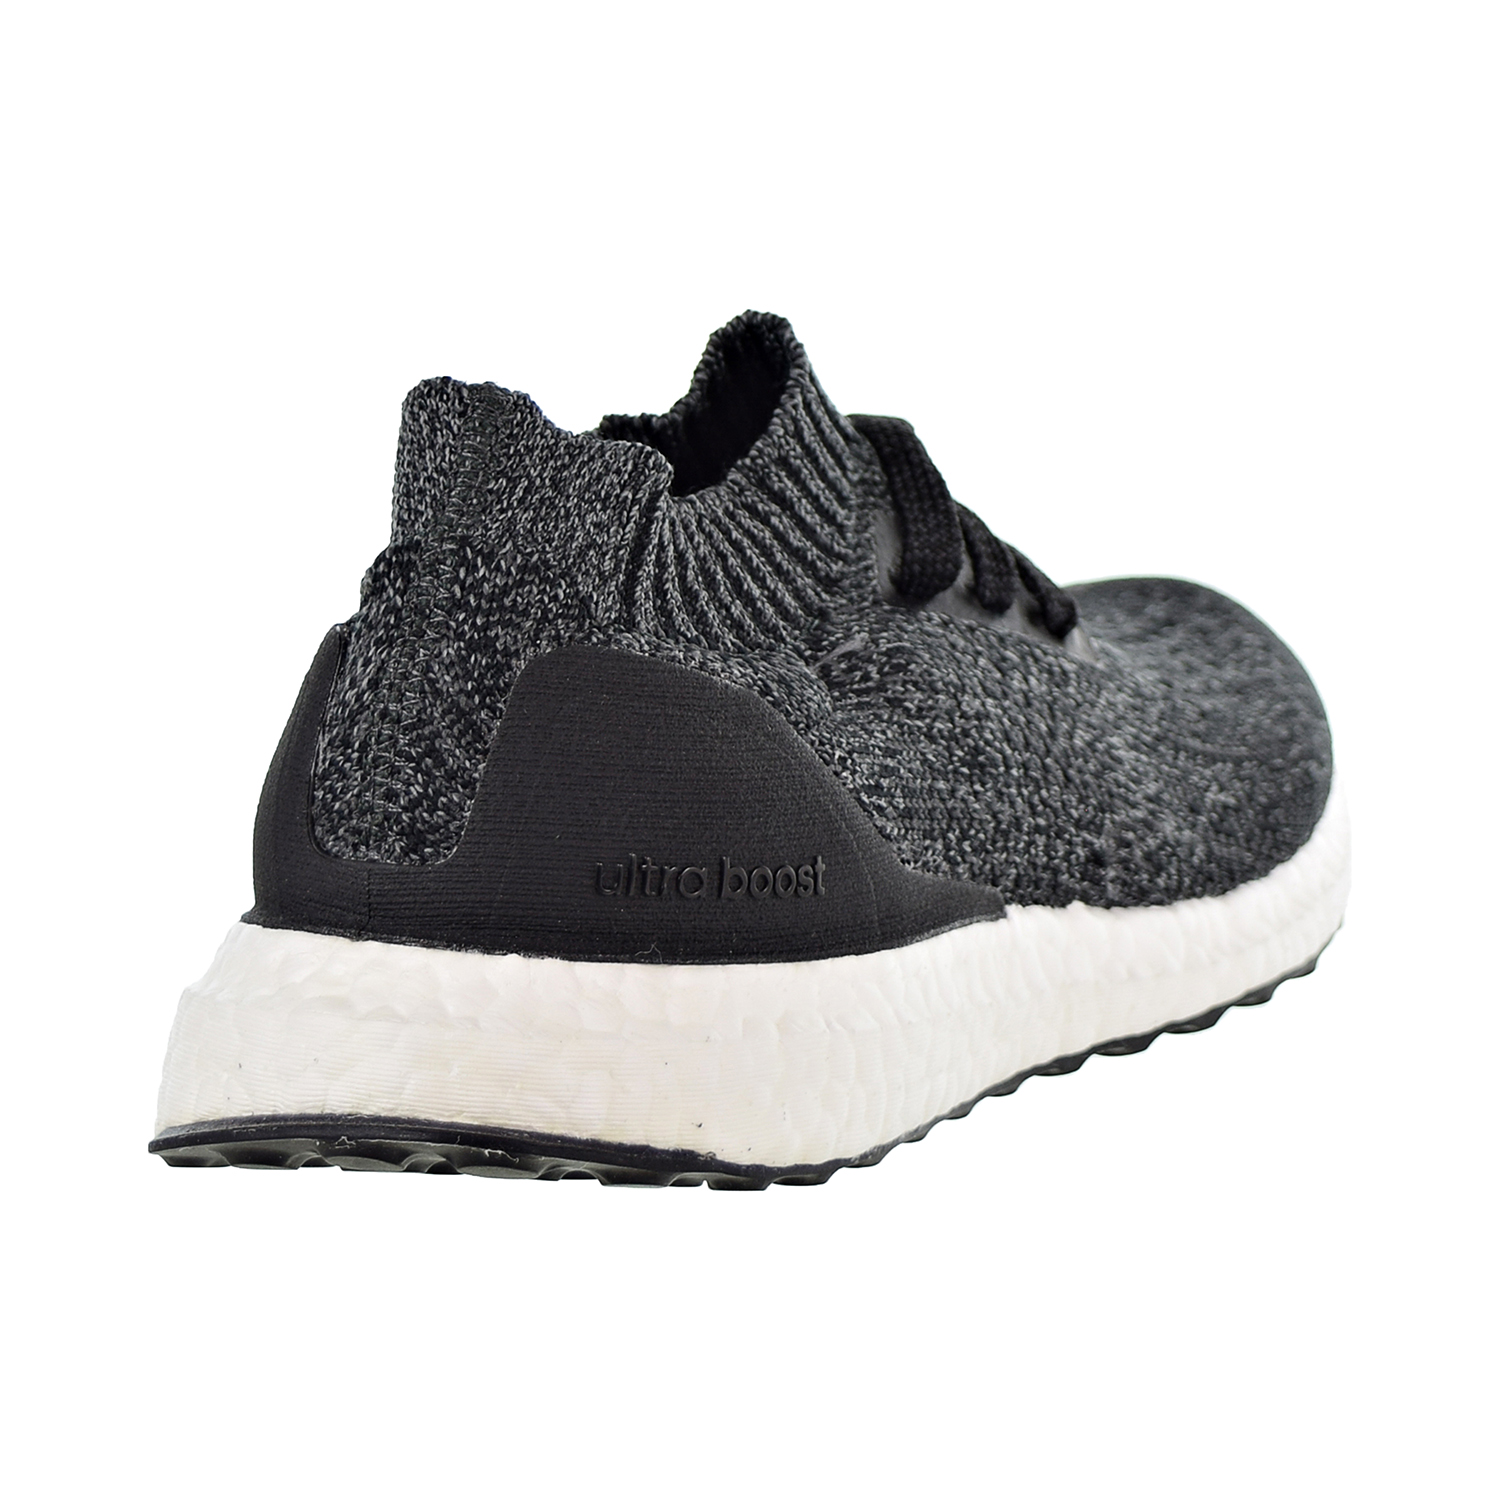 7a60bbc3e Adidas Ultraboost Uncaged Women s Running Shoes Core Black Solid Grey White  s80779